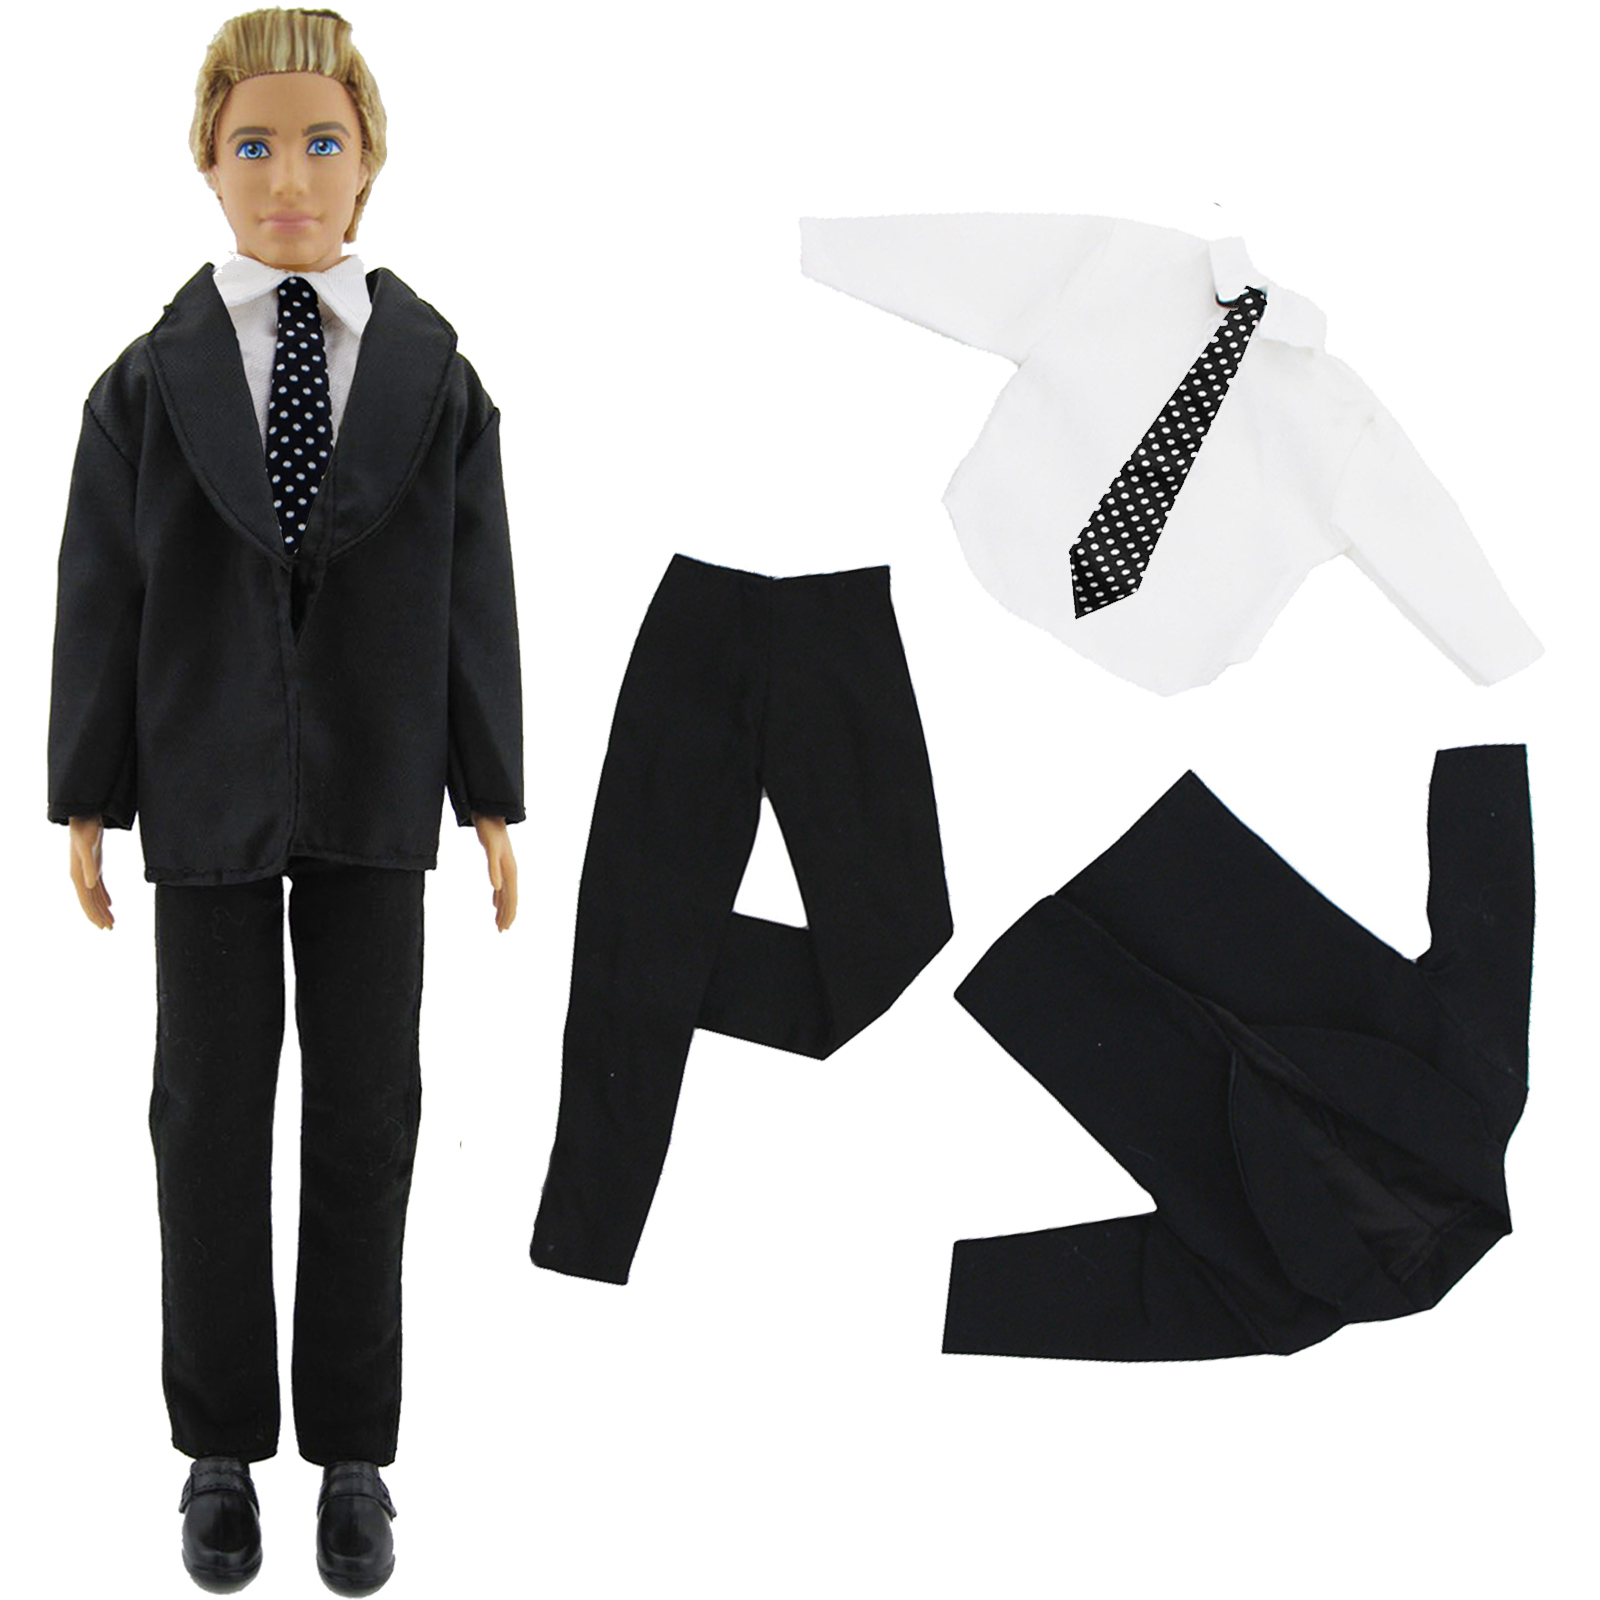 Fashion Formal Business Suit Tie Tuxedo Black Coat Wedding Party Outfit Dress Clothes For Barbie Ken Doll Accessories